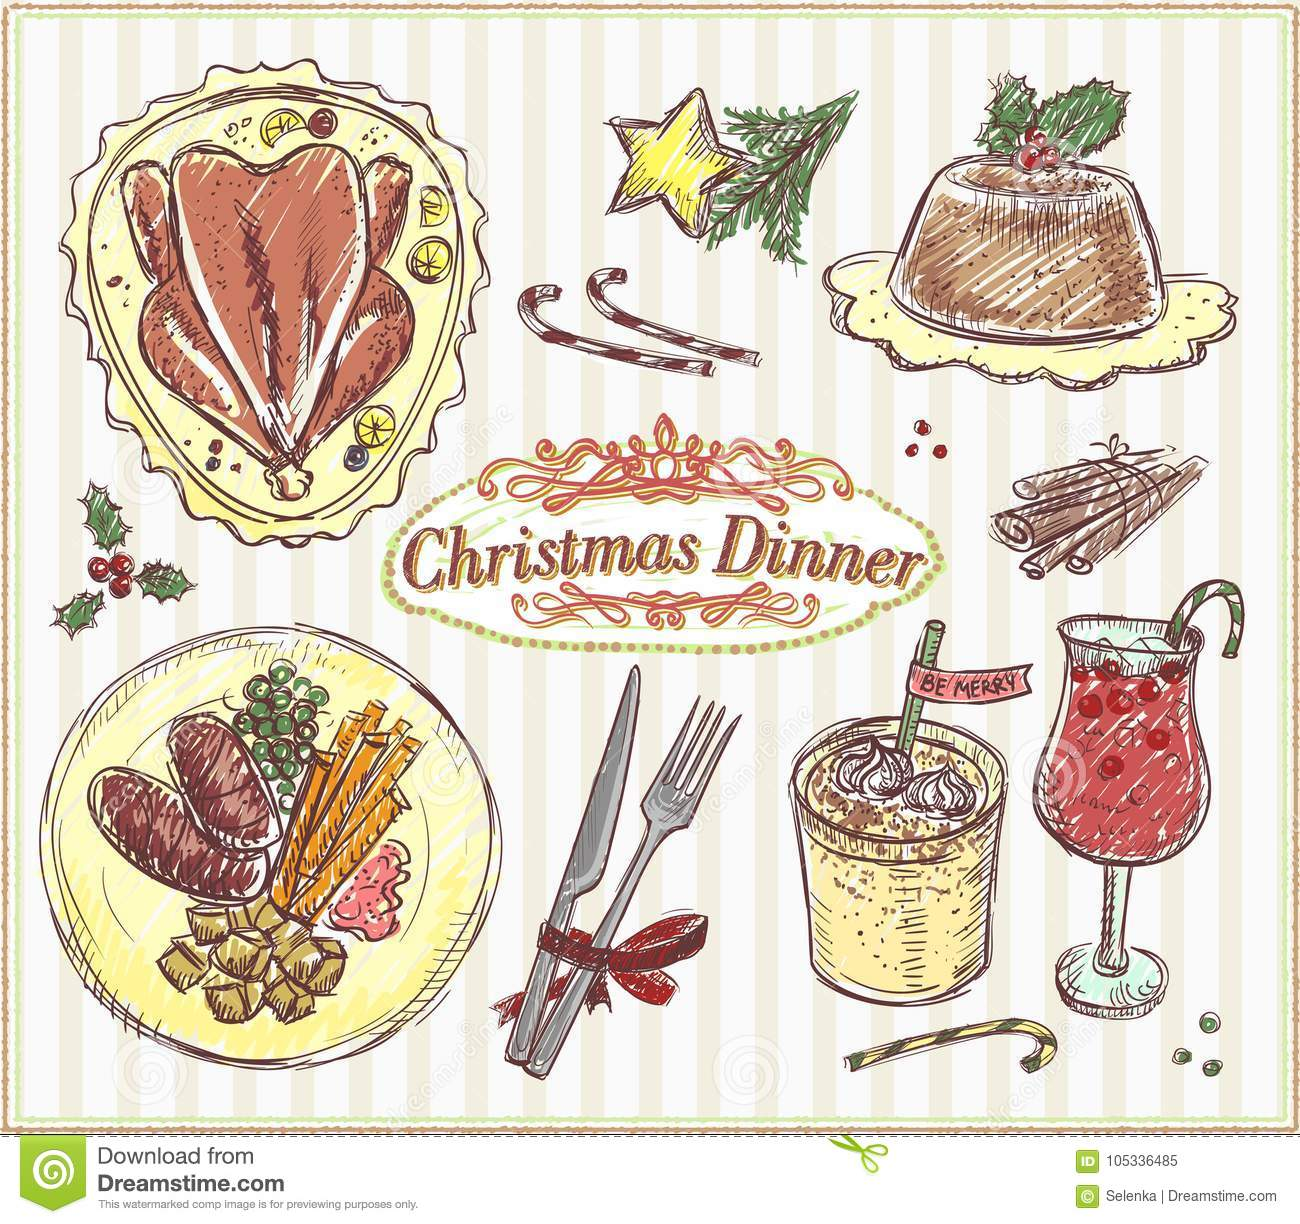 Menu Traditionnel De Noel.Menu Traditionnel De Noel Illustration Tiree Par La Main De